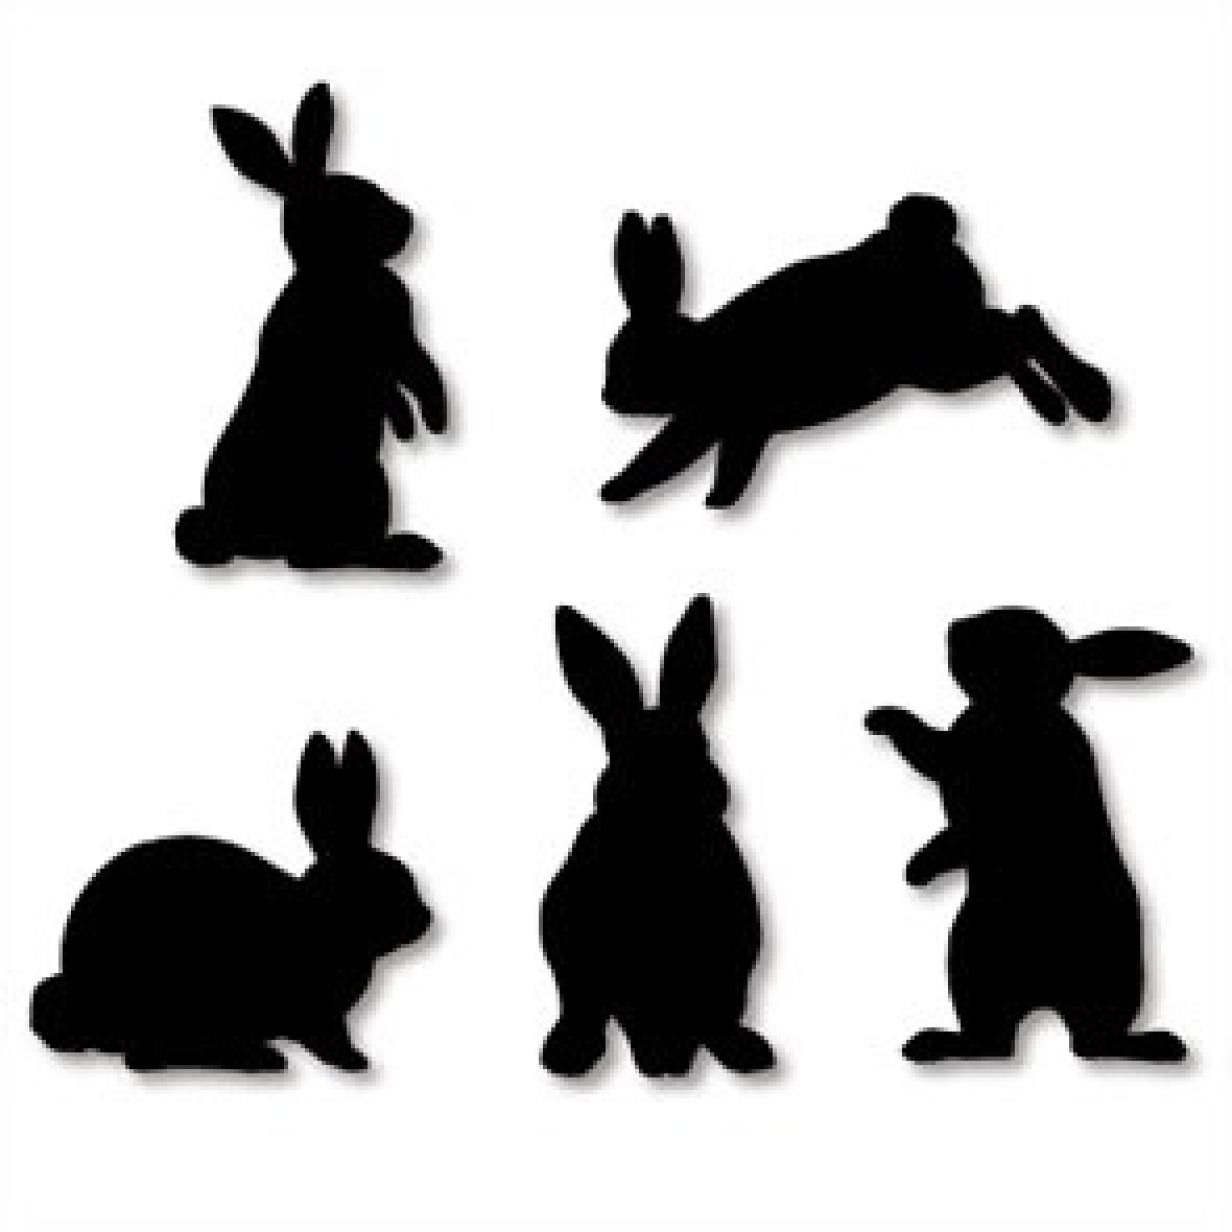 Wall Decorations Rabbit Home And Living Paper Craft Rabbit Silhouette Decoration Purple Cream